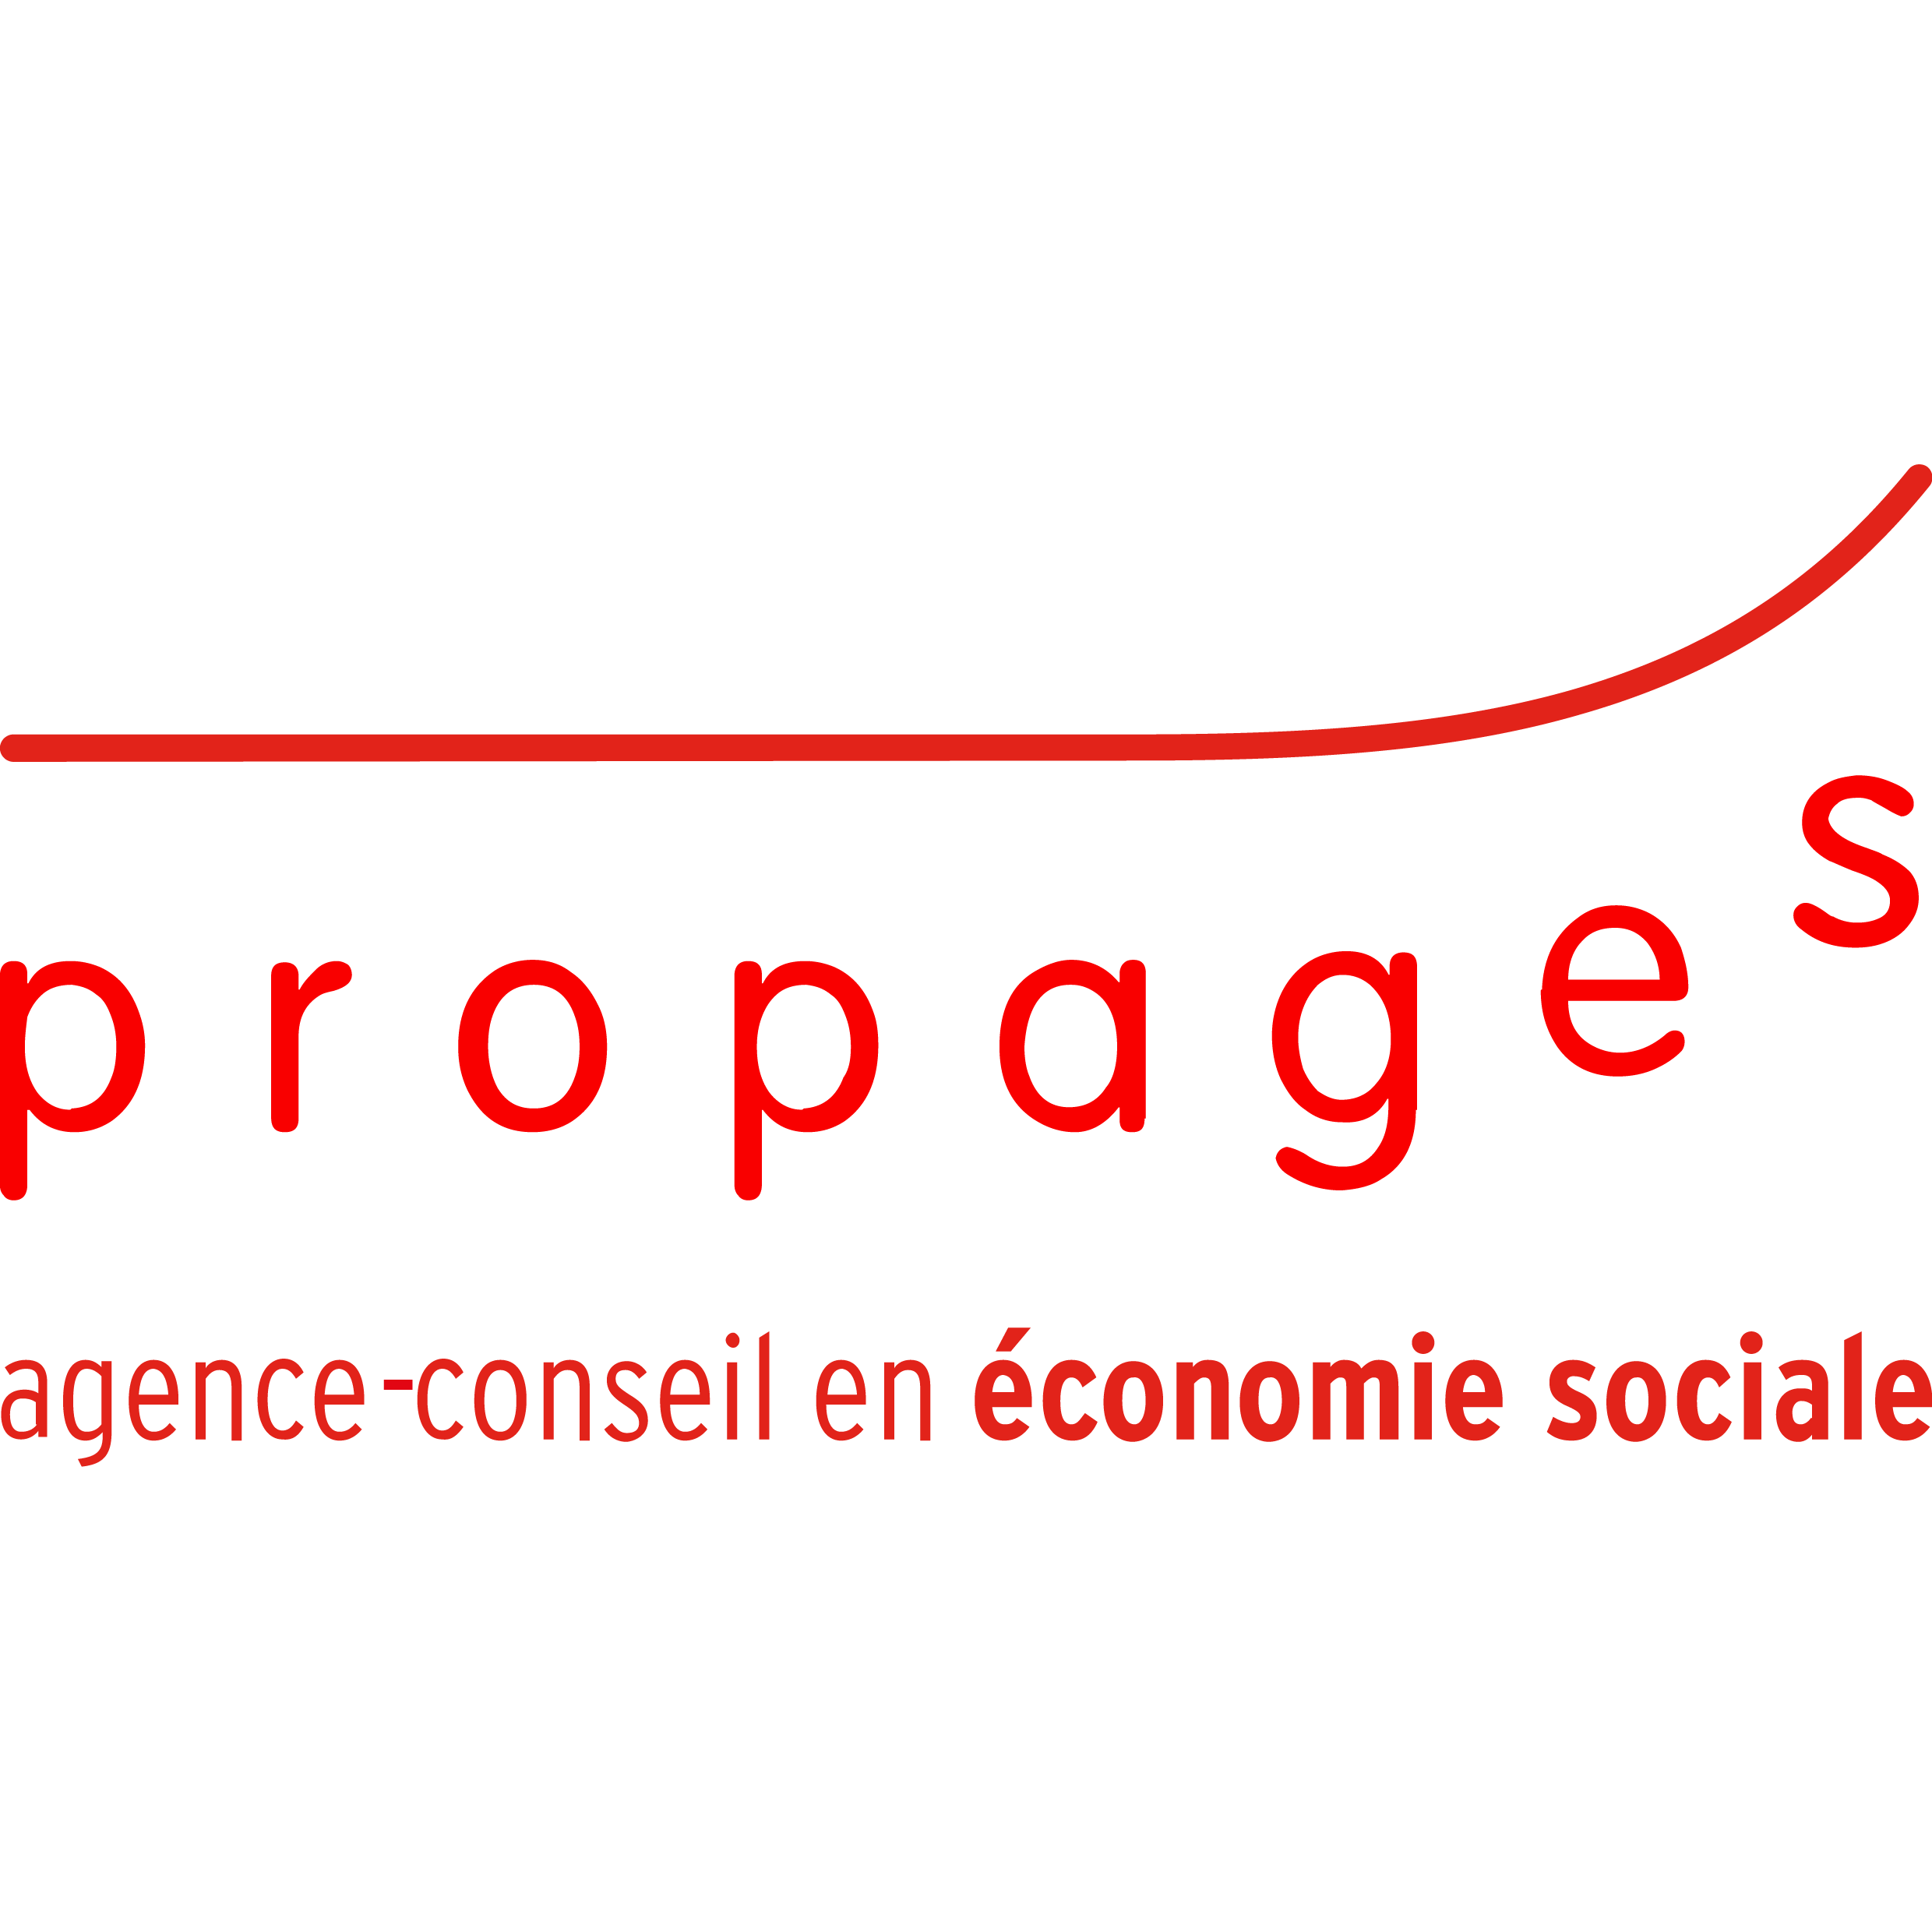 Propages